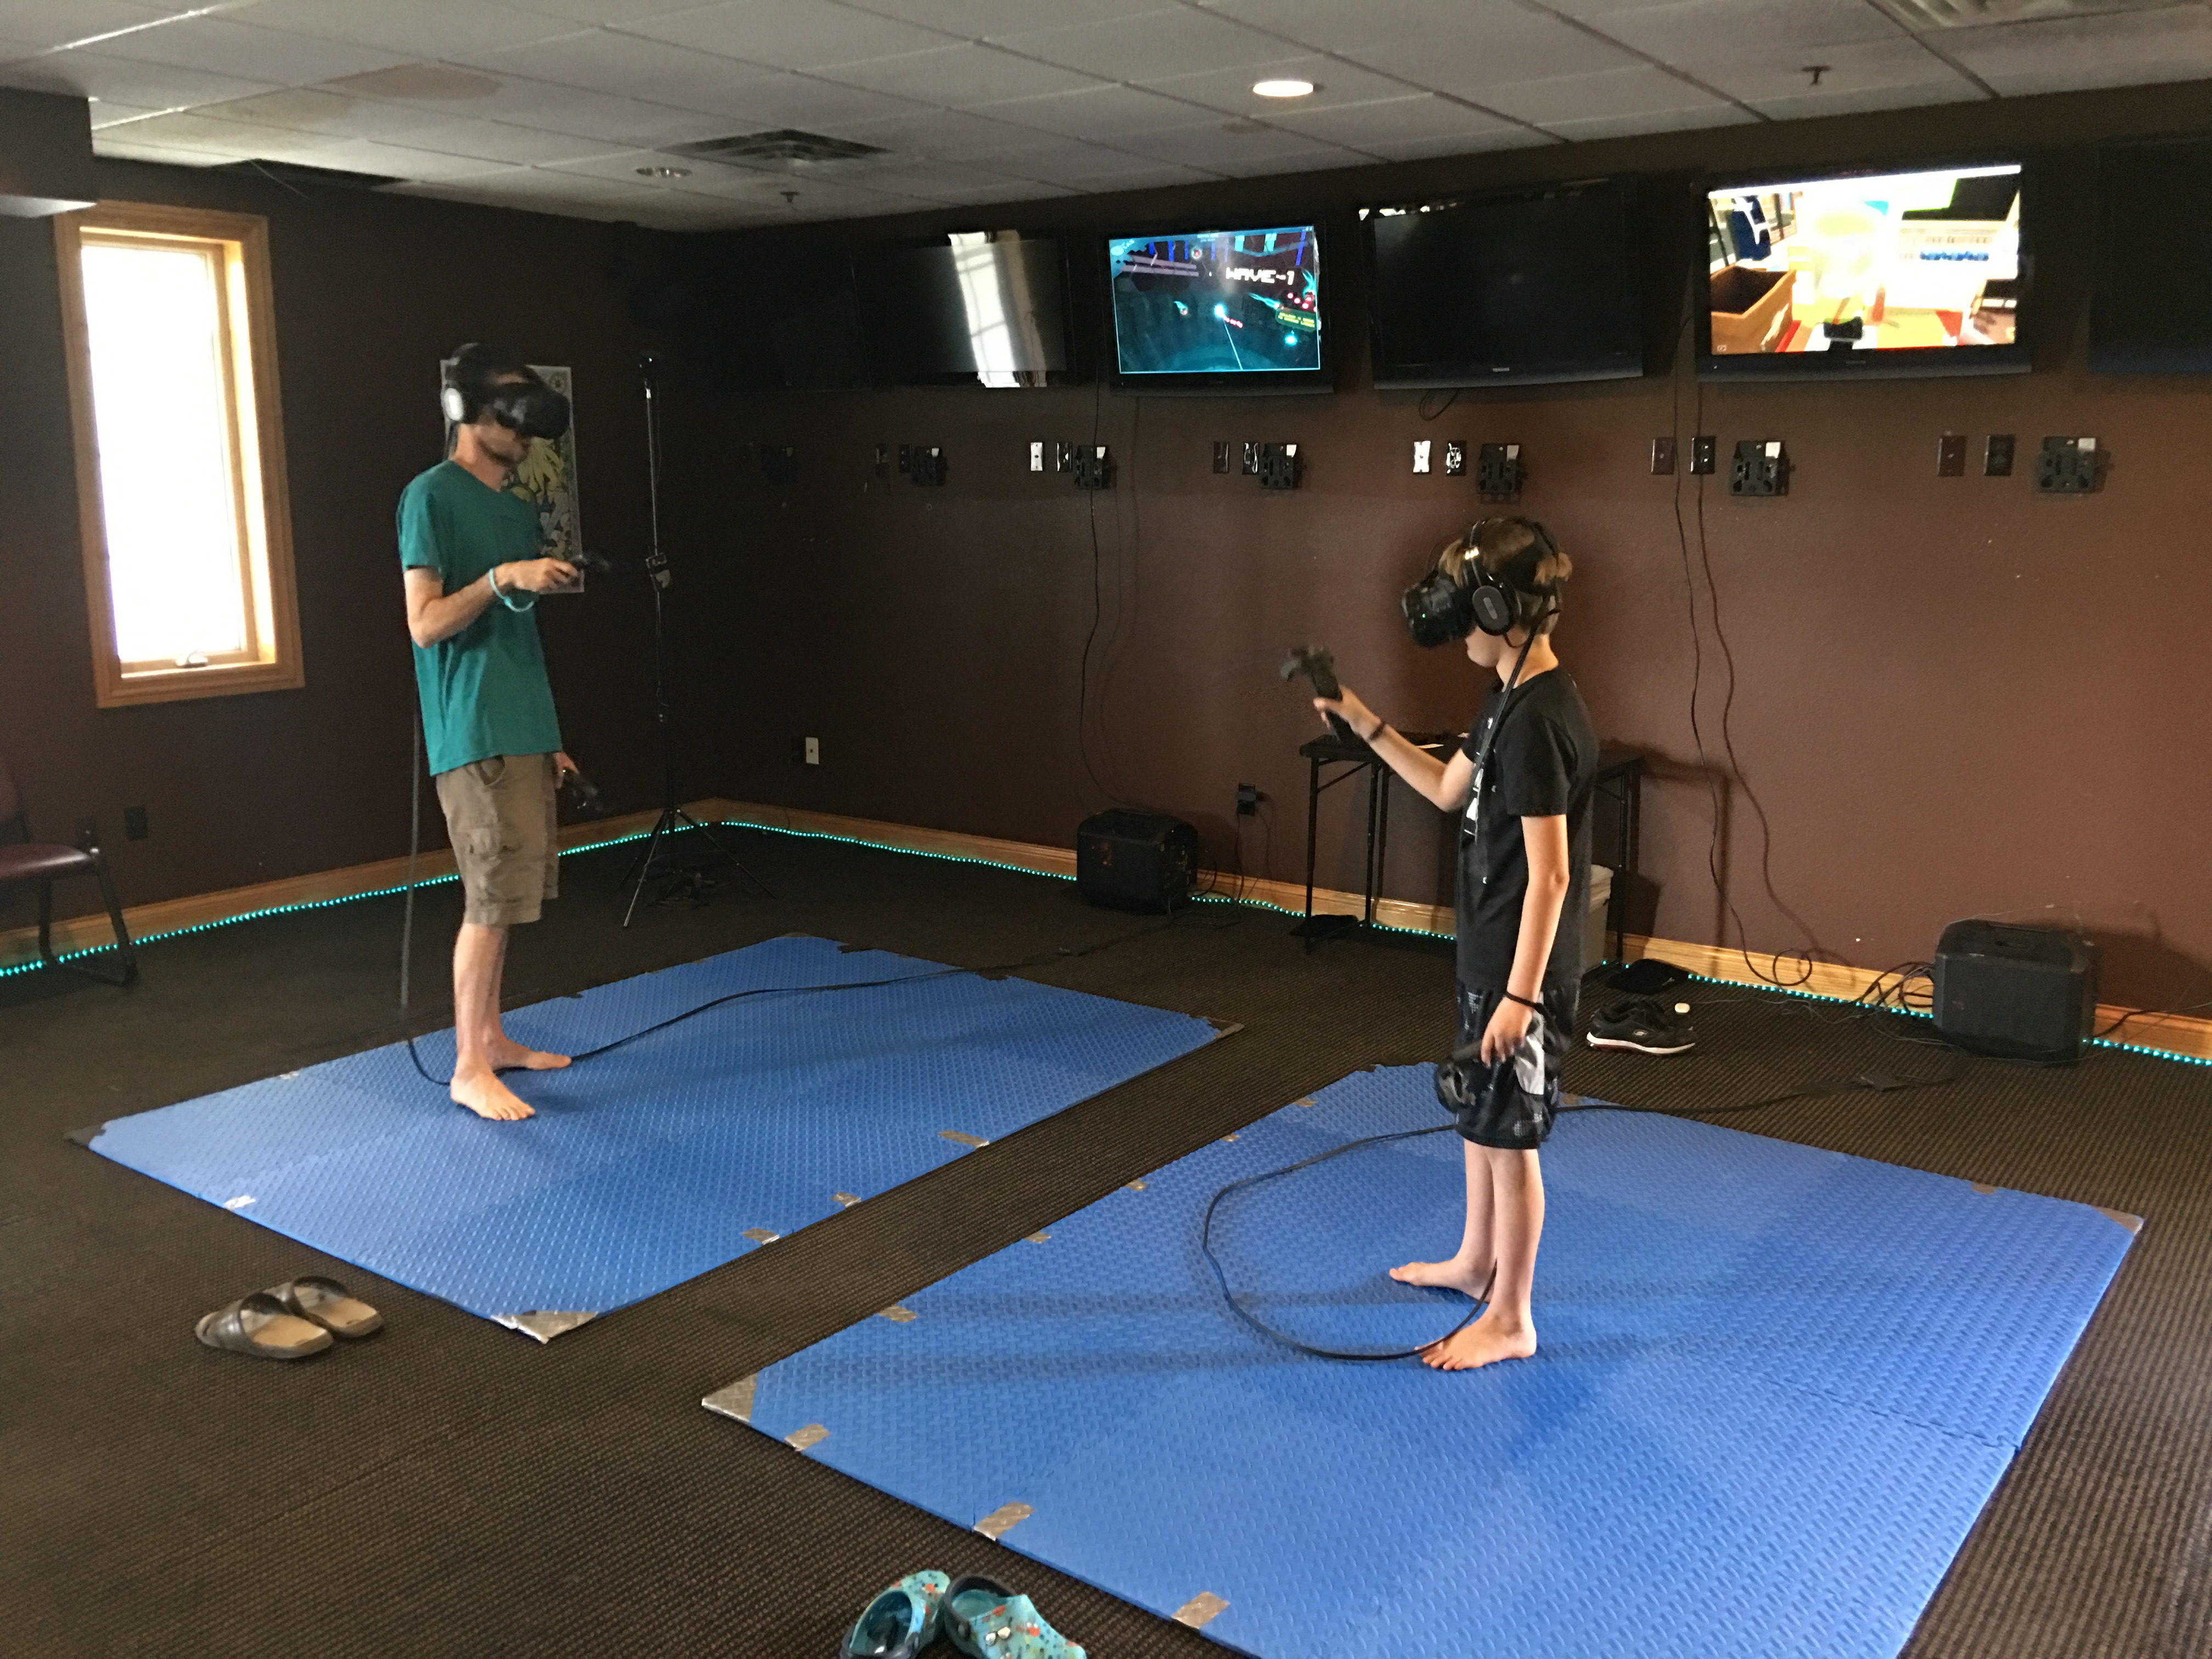 Arcade heroes three new vr arcade locations immersion for Room design vr